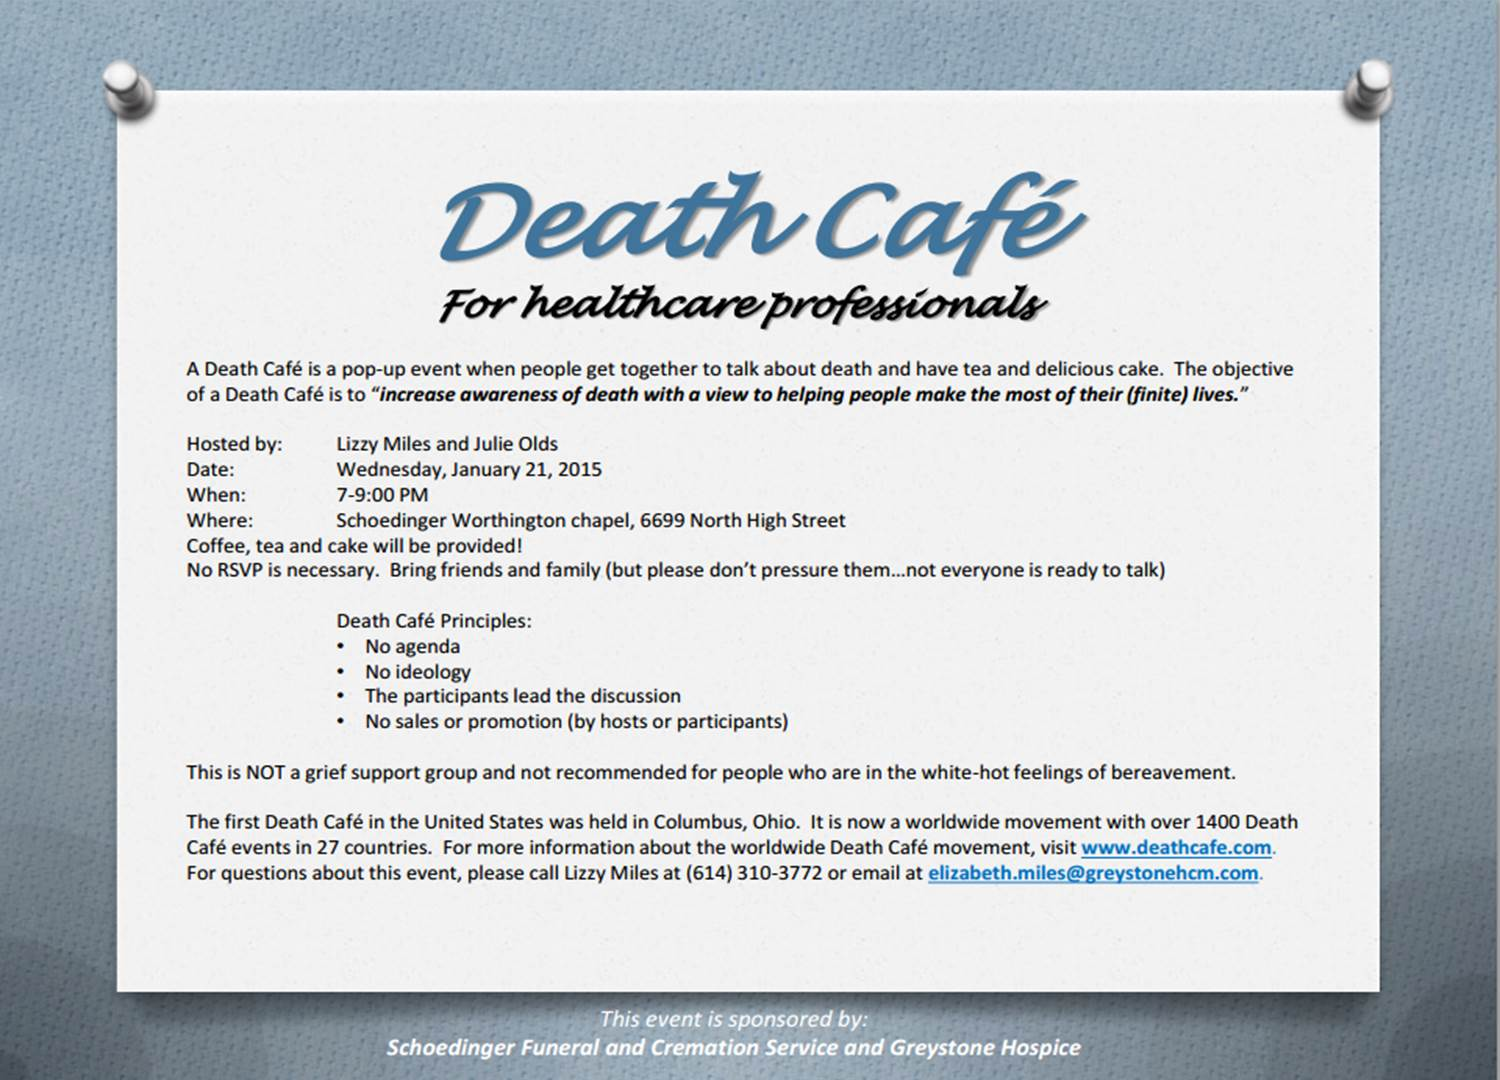 Death Cafe in Worthington, OH for Healthcare Professionals